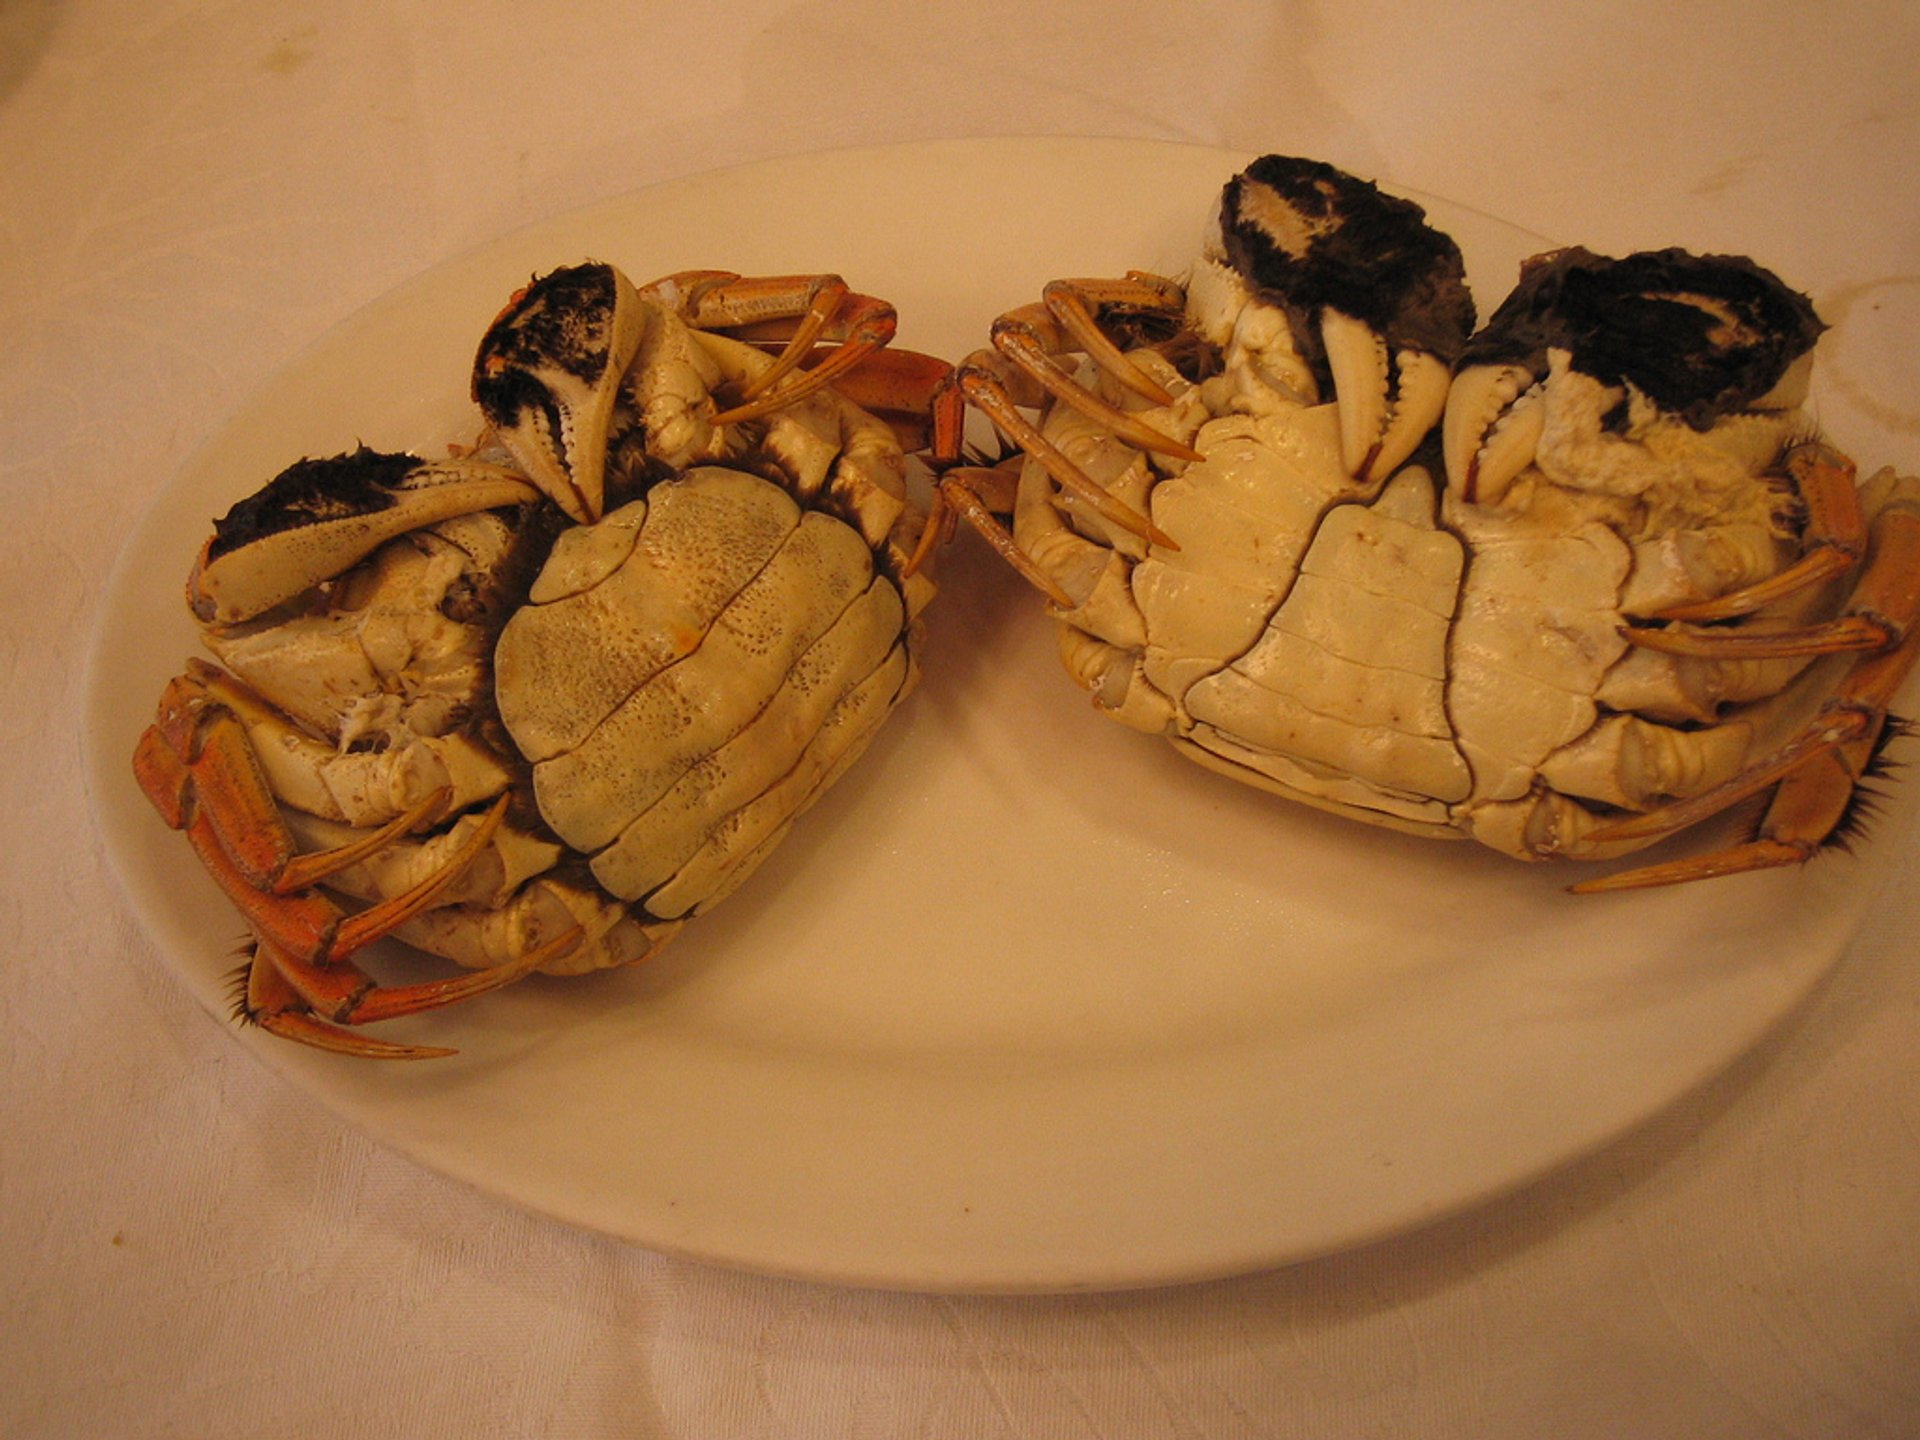 Hairy Crab Season in Shanghai - Best Season 2020